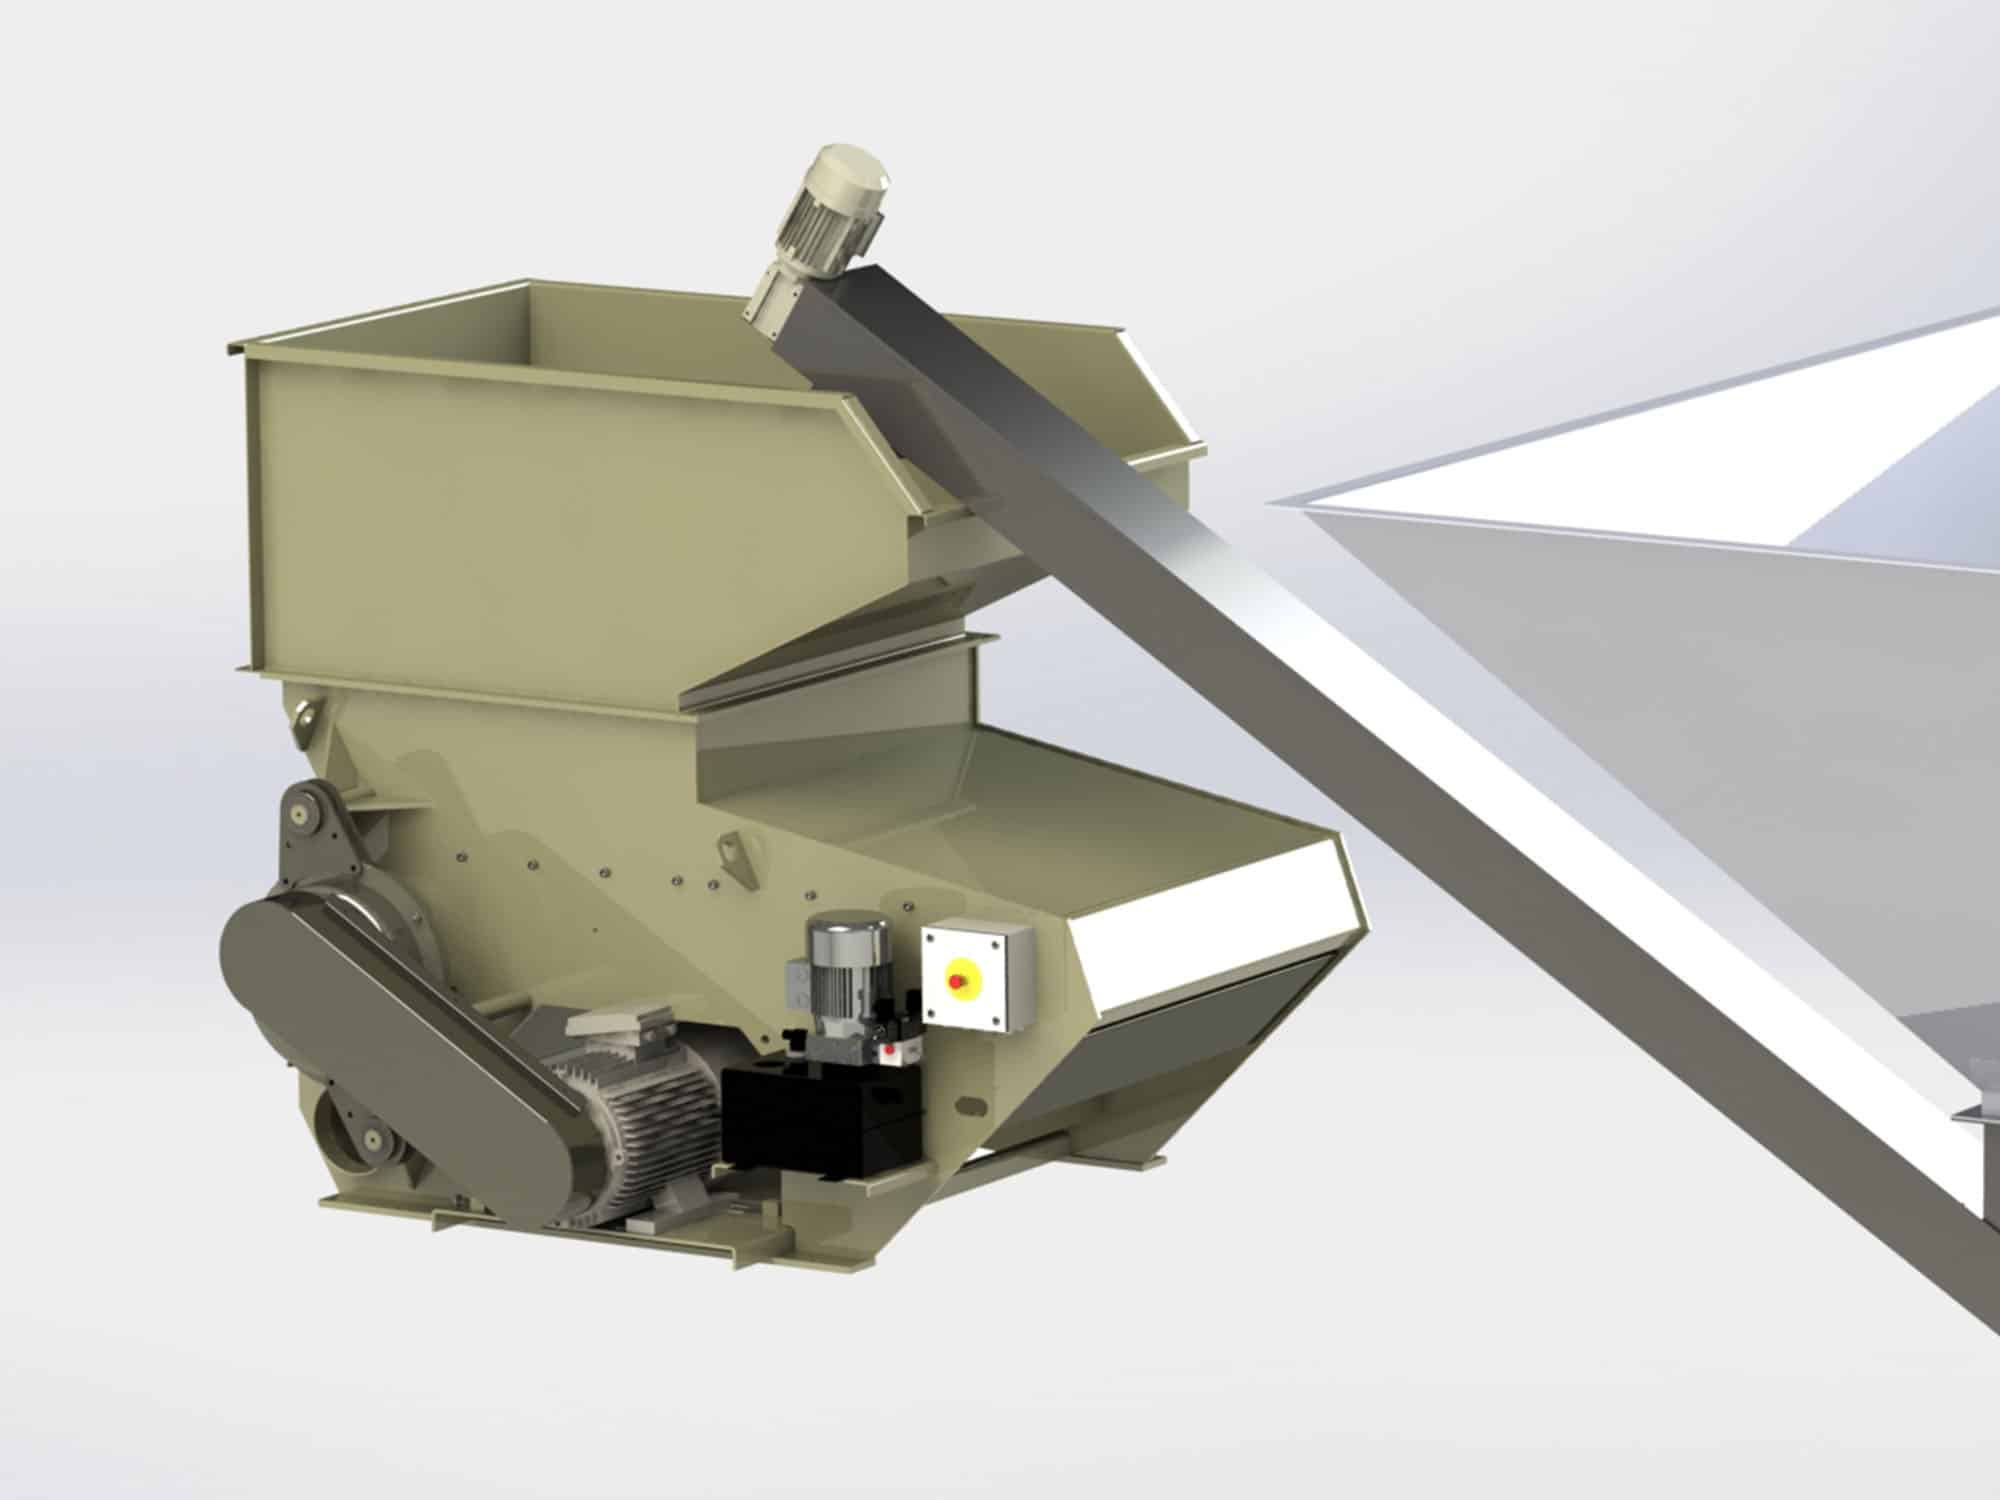 3D rendered wood shredder with auger conveyor